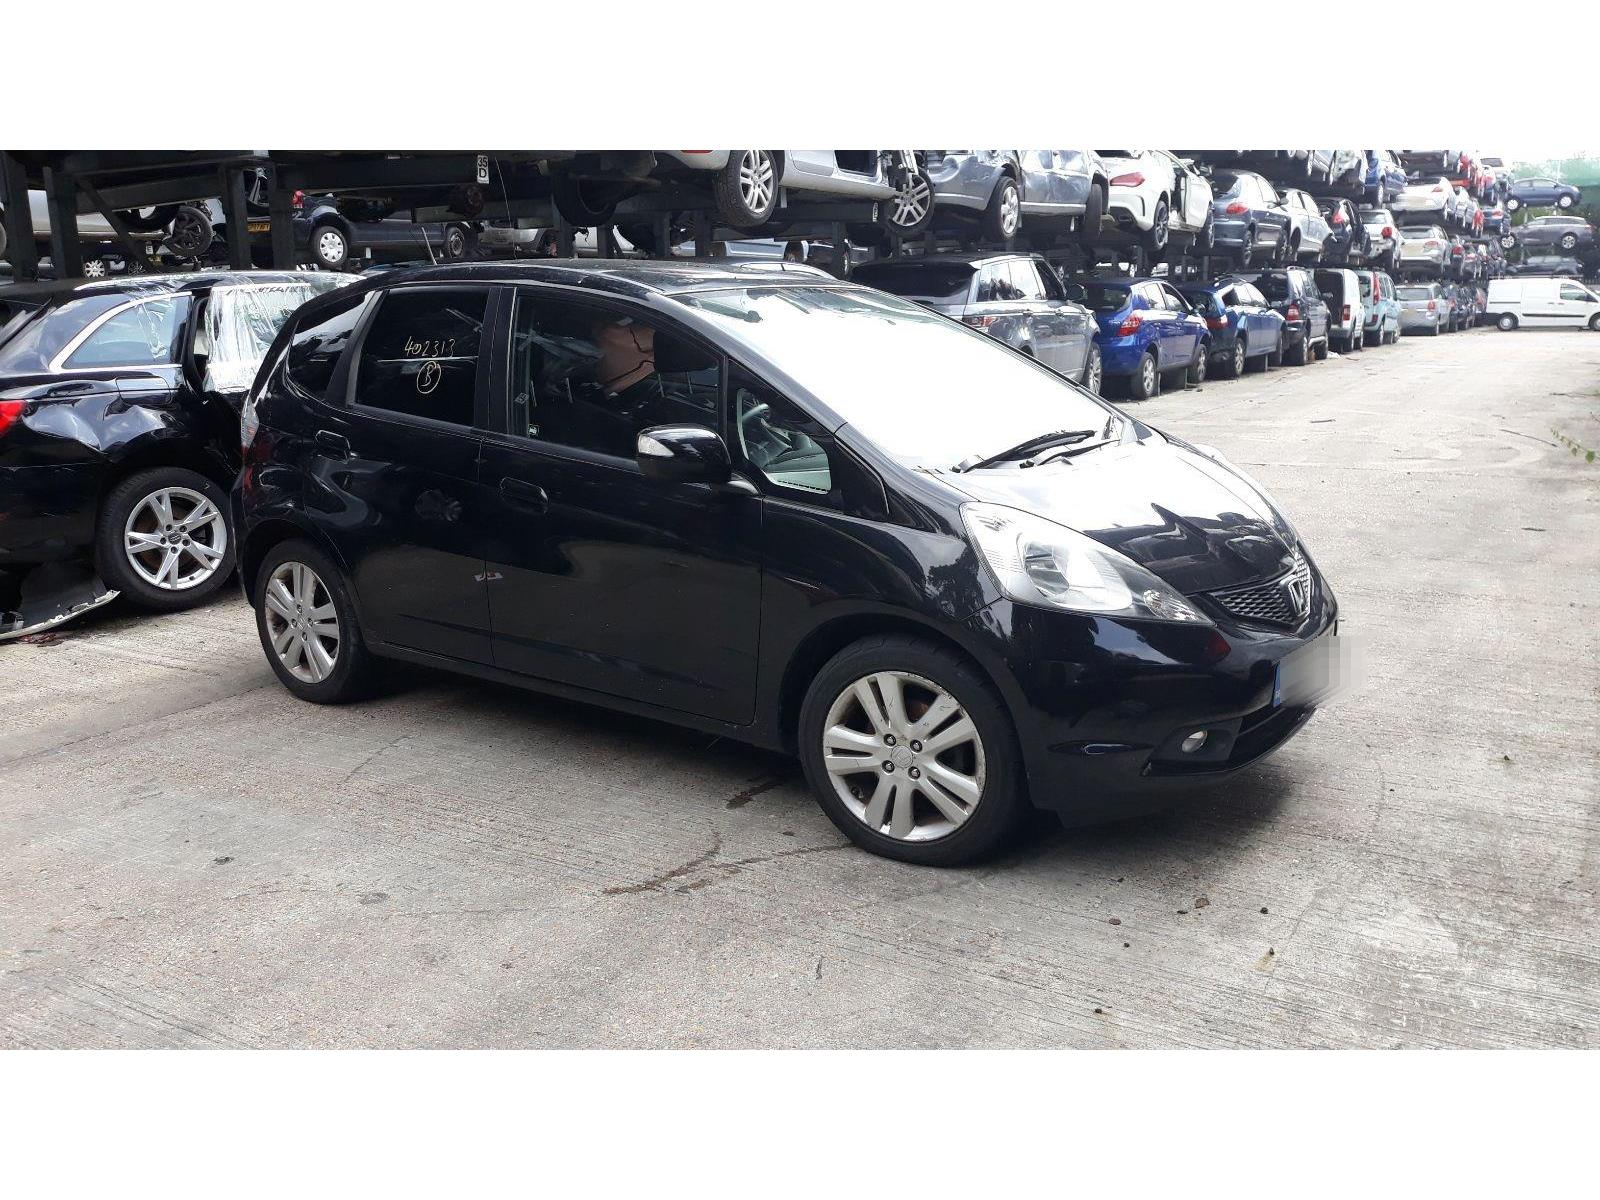 Honda Jazz 2009 To 2010 Ex I Vtec 5 Door Hatchback Scrap Salvage Fit Fuse Box Car For Sale Auction Silverlake Autoparts